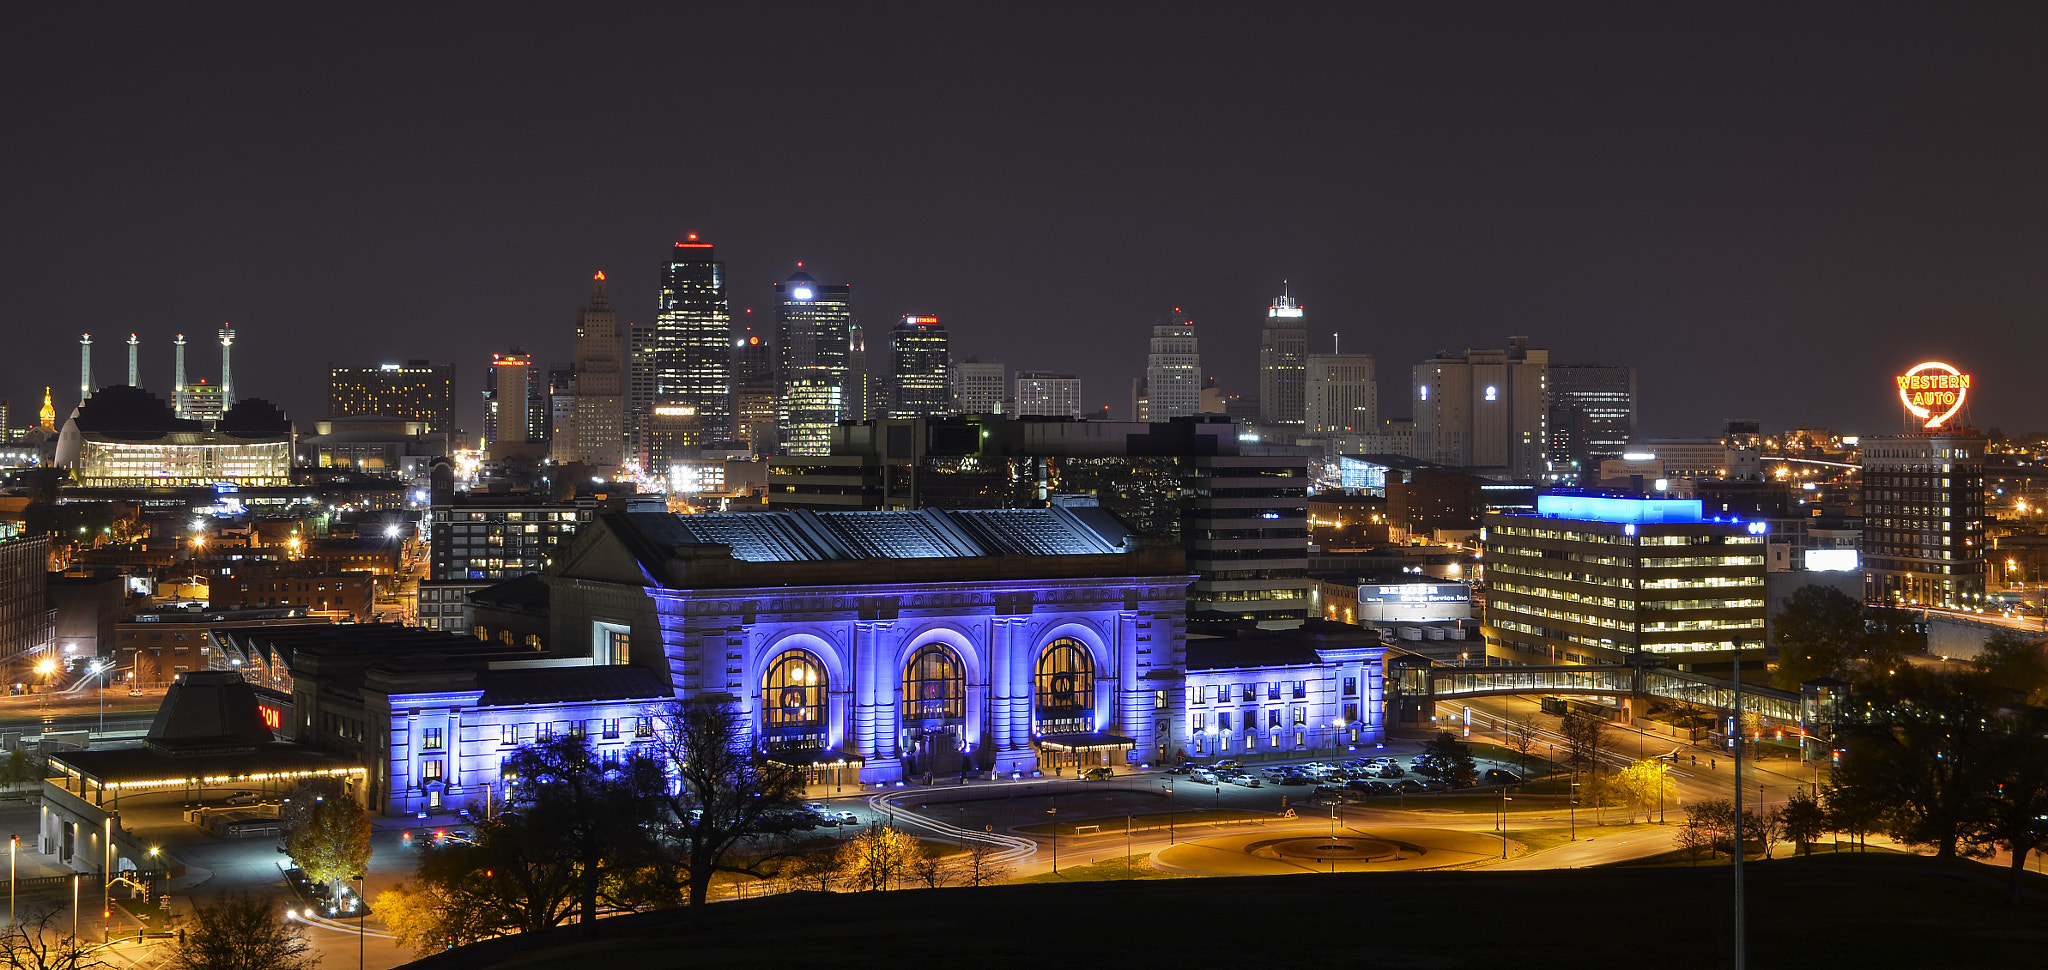 Photograph Kansas City at Night by Chris Reese on 500px